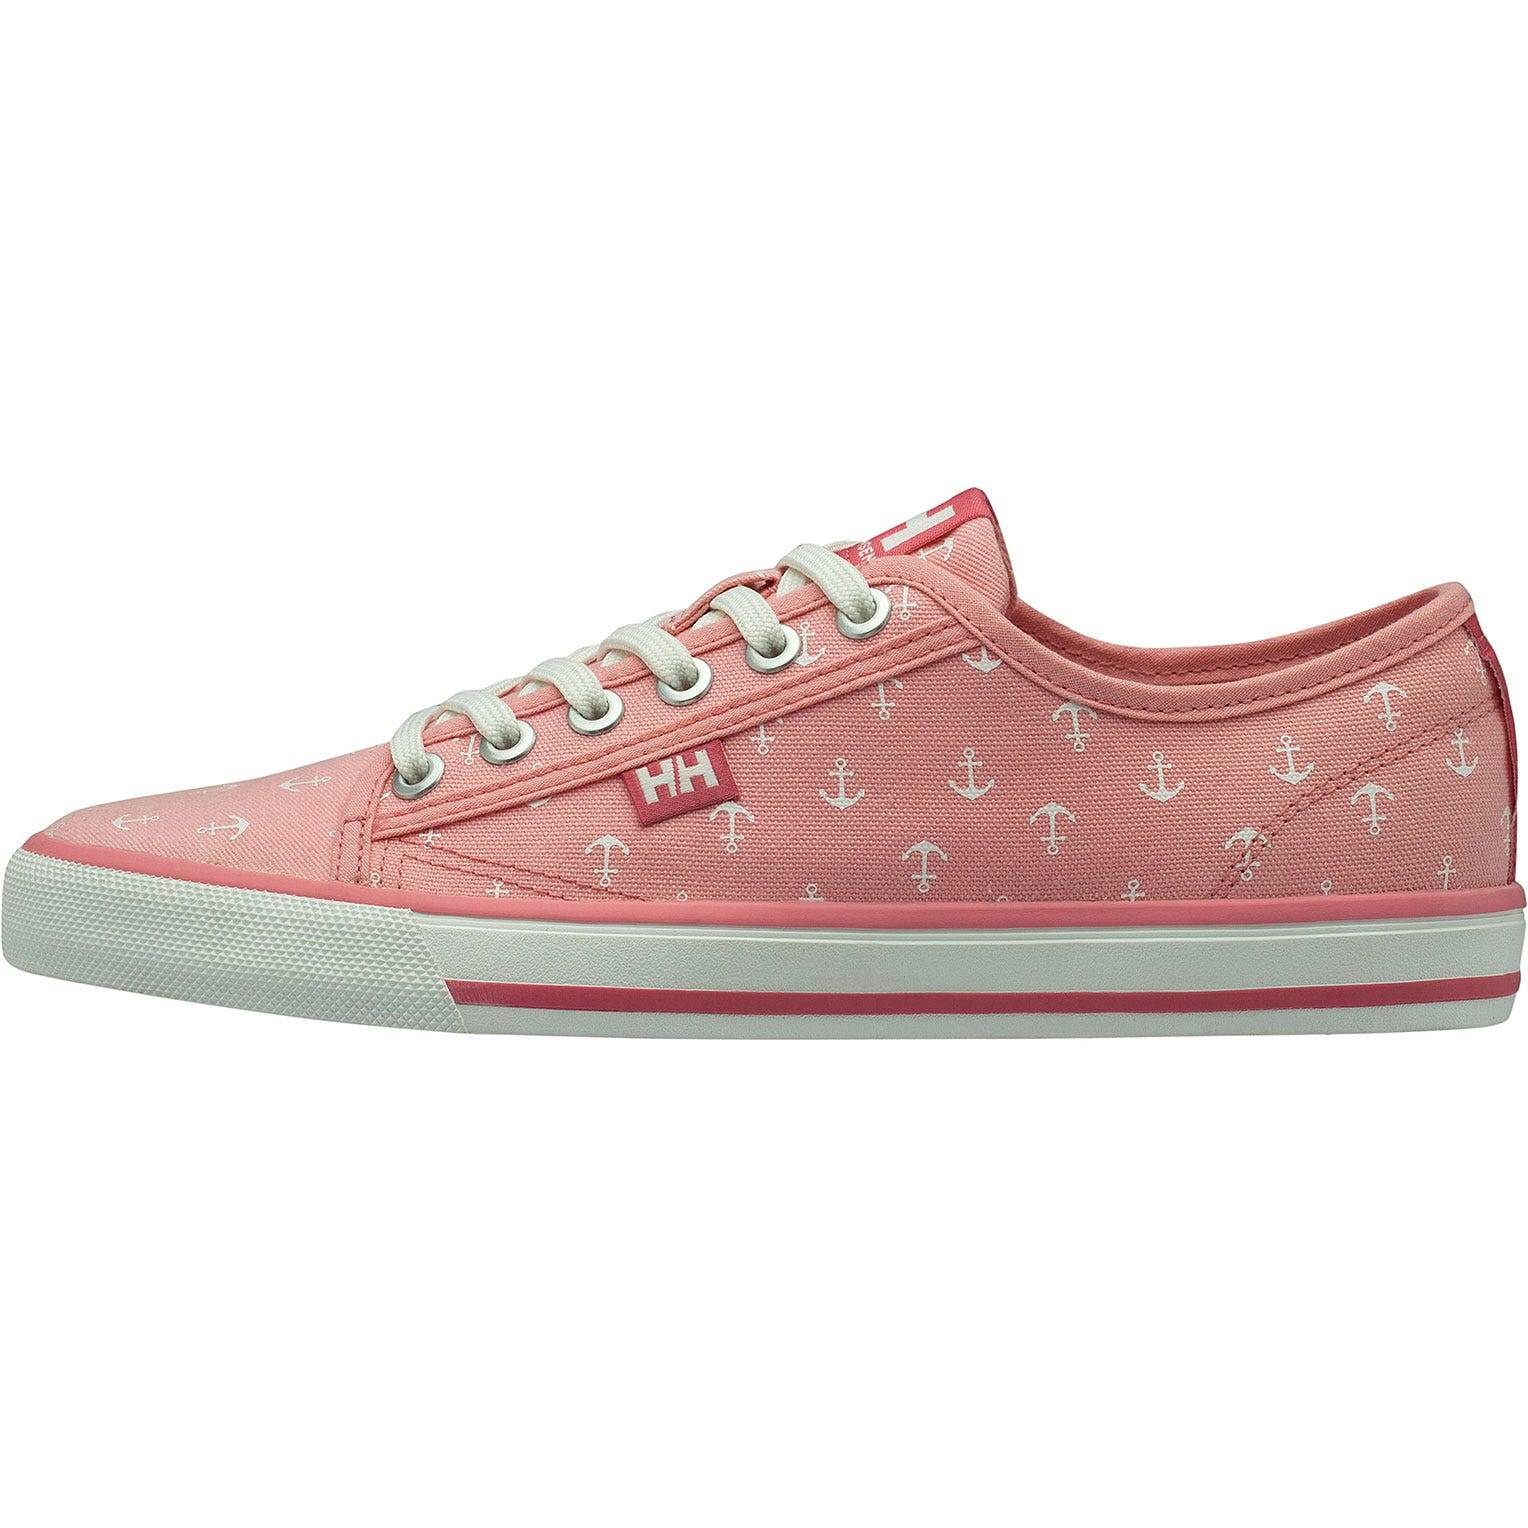 Helly Hansen W Fjord Canvas Shoe V2 Womens Casual Pink 40.5/9